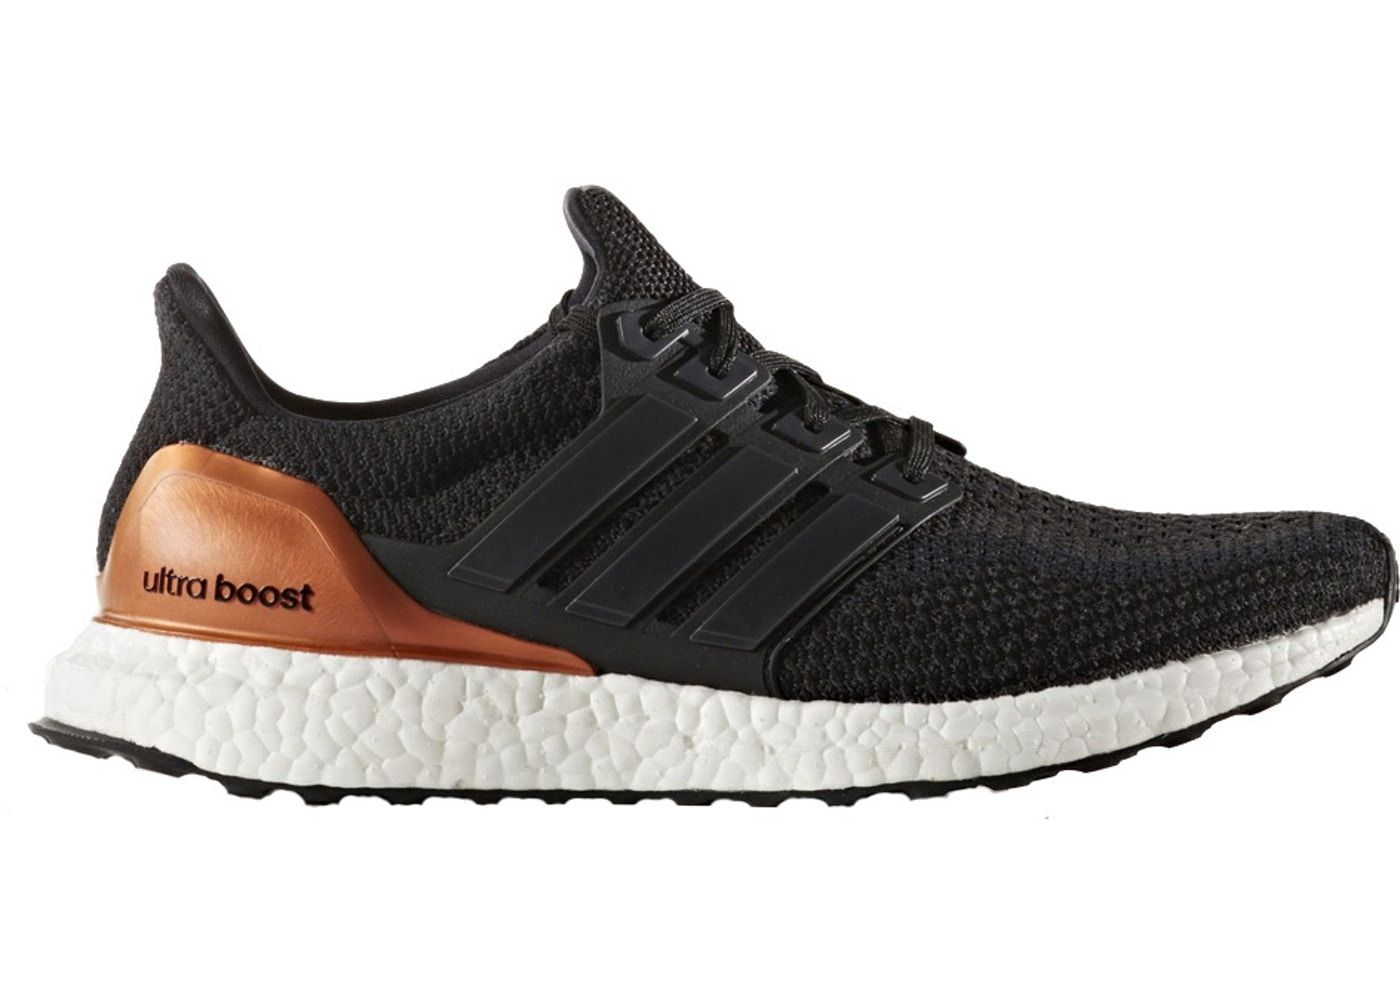 791465b8 adidas Ultra Boost 2.0 Bronze Medal (2016/2018) in 2019 | Hypebeast ...